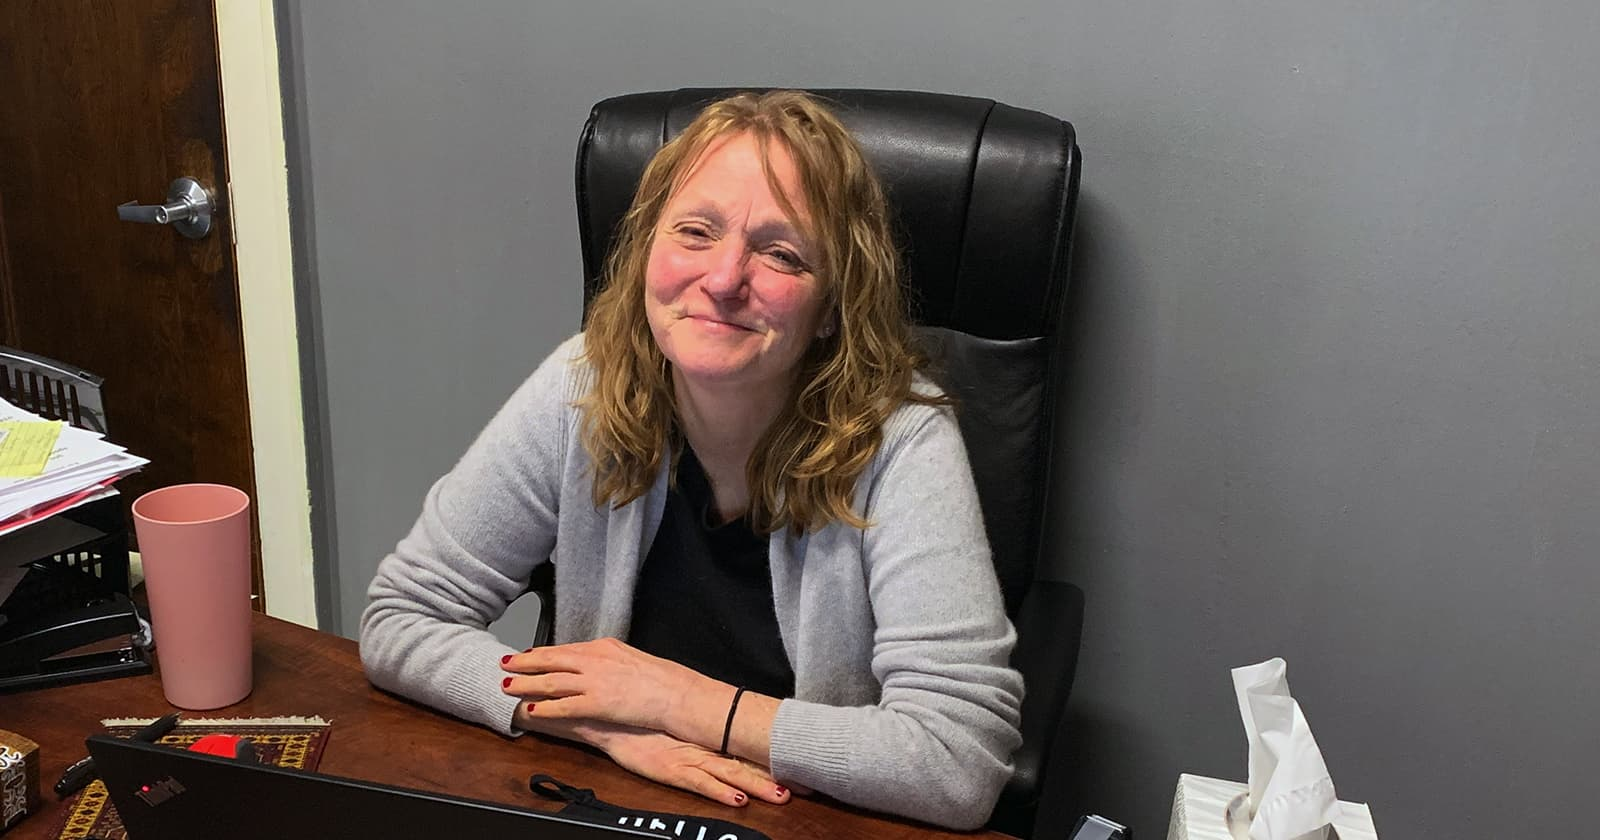 Kris Rittenmeyer sitting at desk in her office